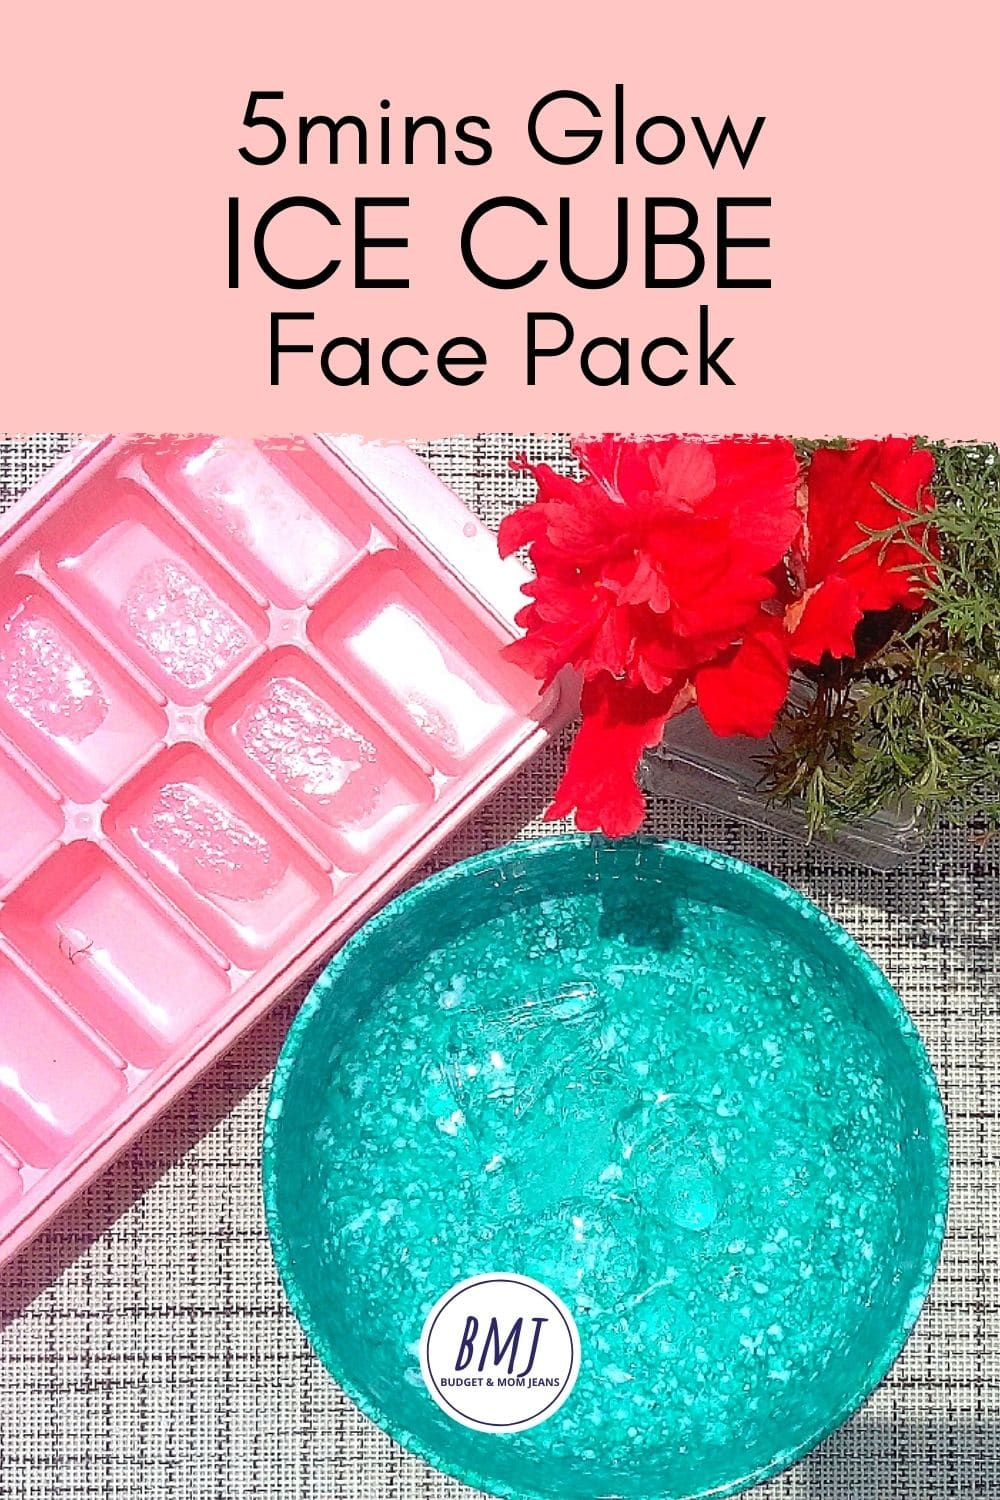 Simple Ice Cube Face Pack - Glow In 5 Minutes